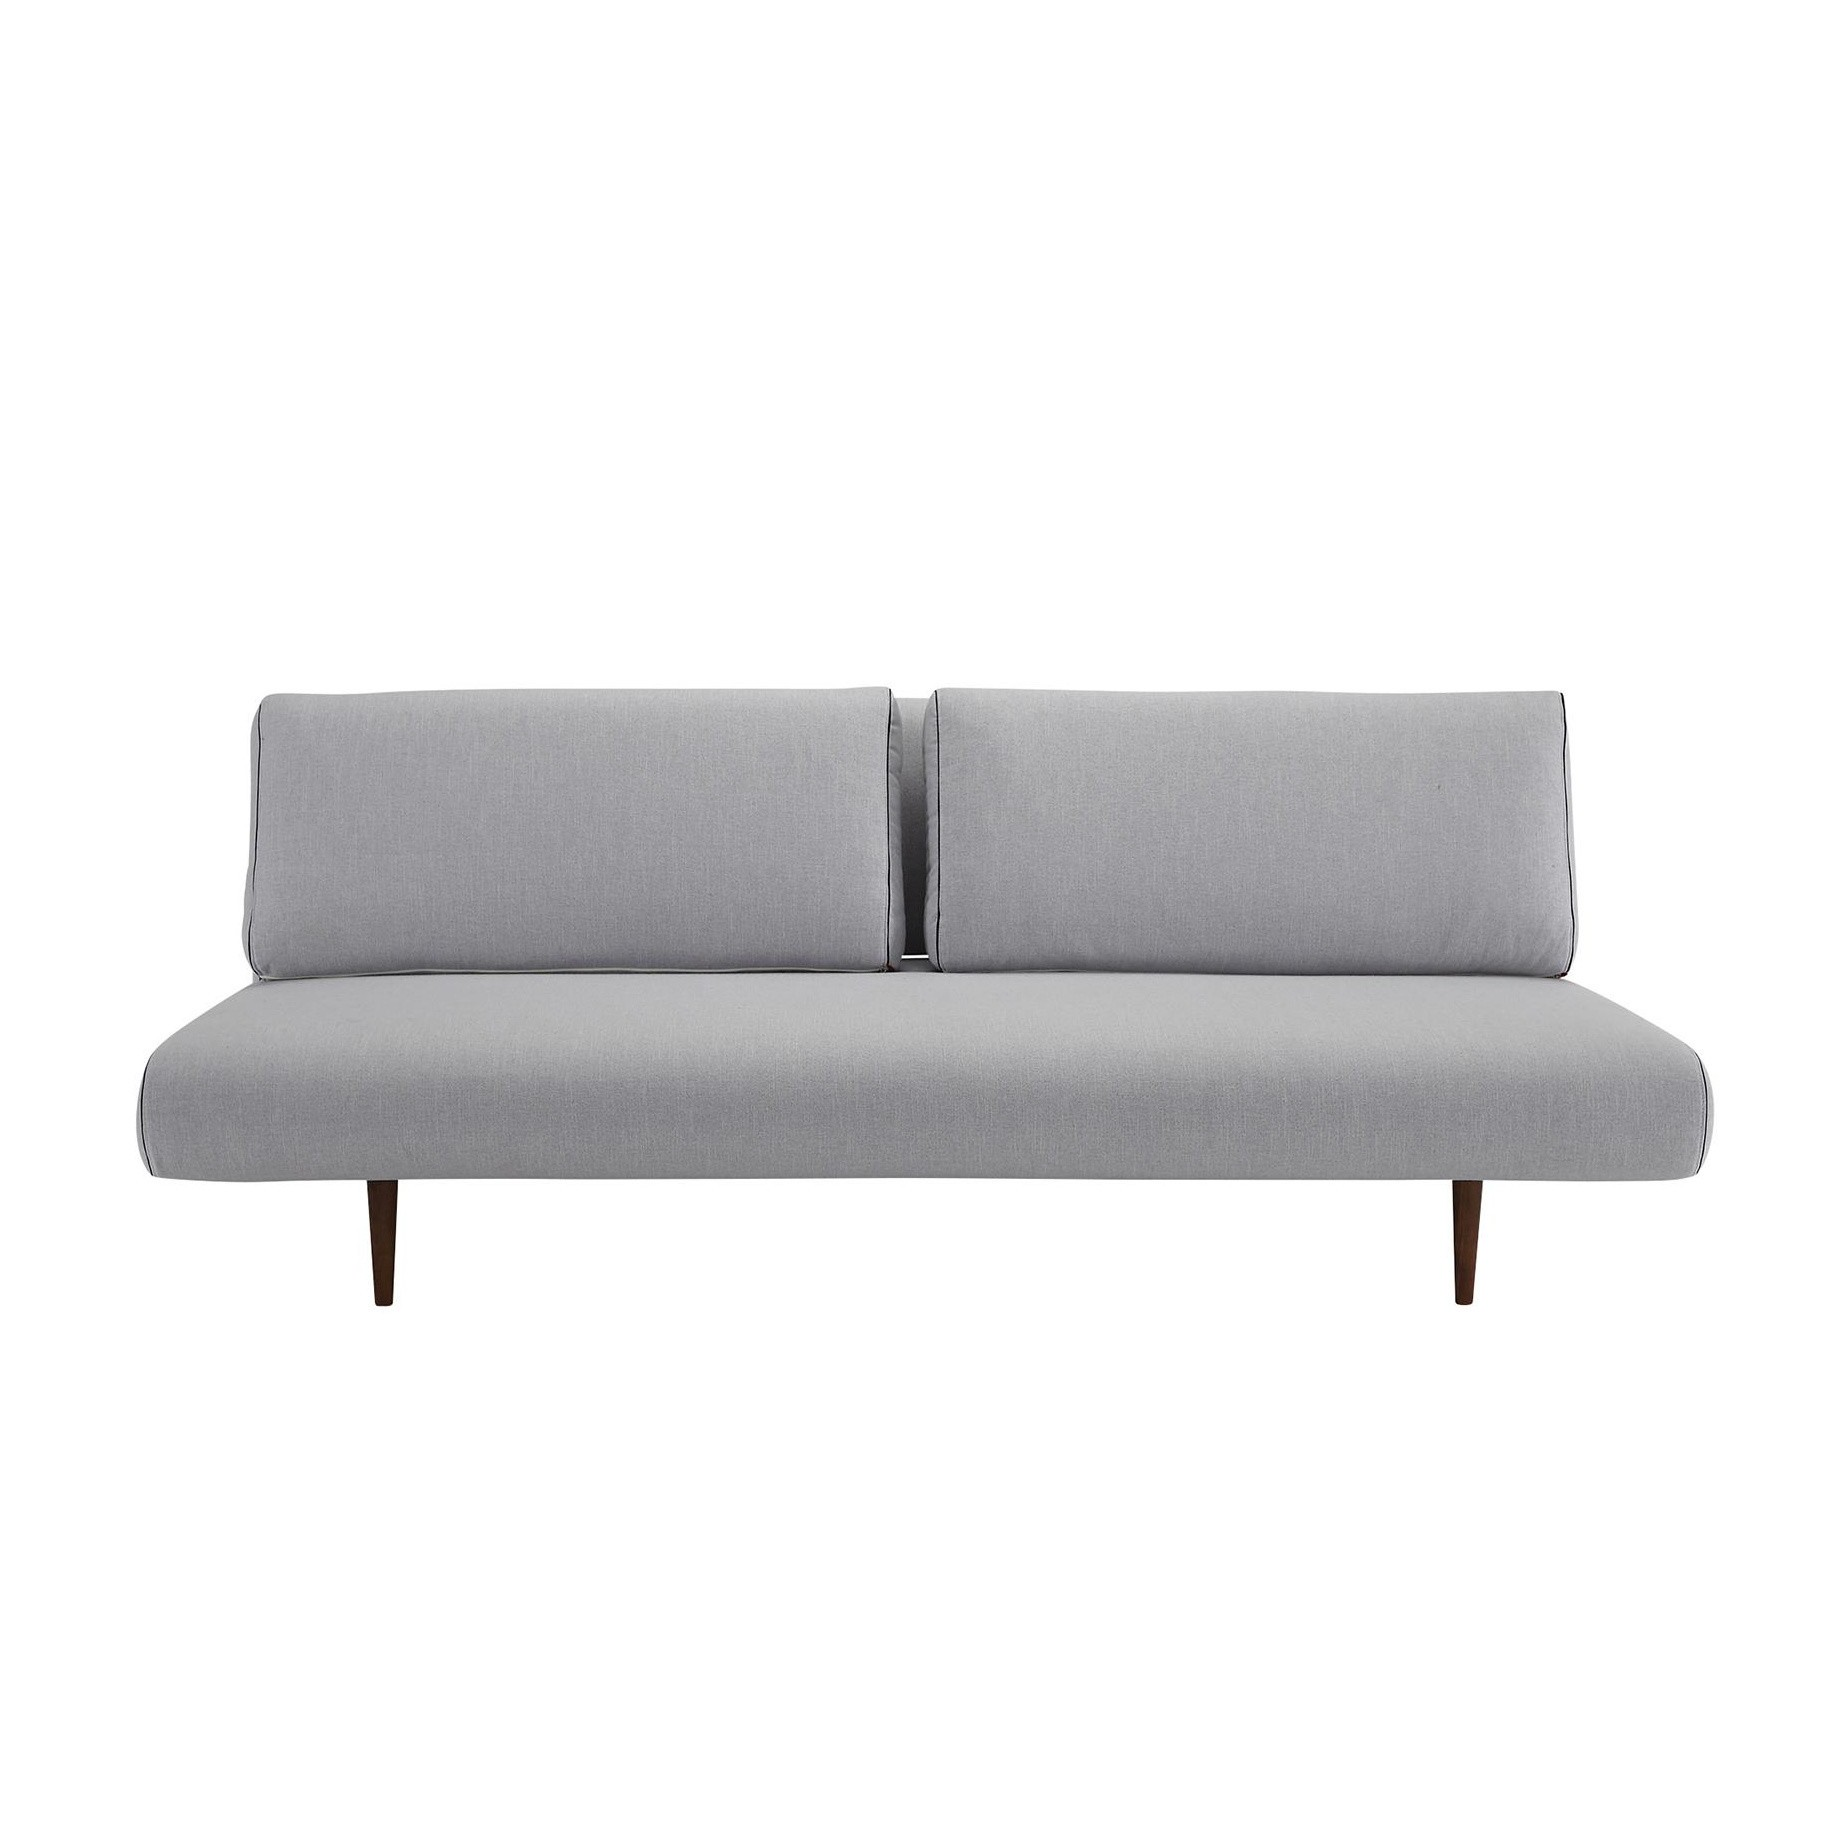 Innovation Unfurl Lounger Sofa Bed Light Grey Fabric 517 Elegance With Cushions